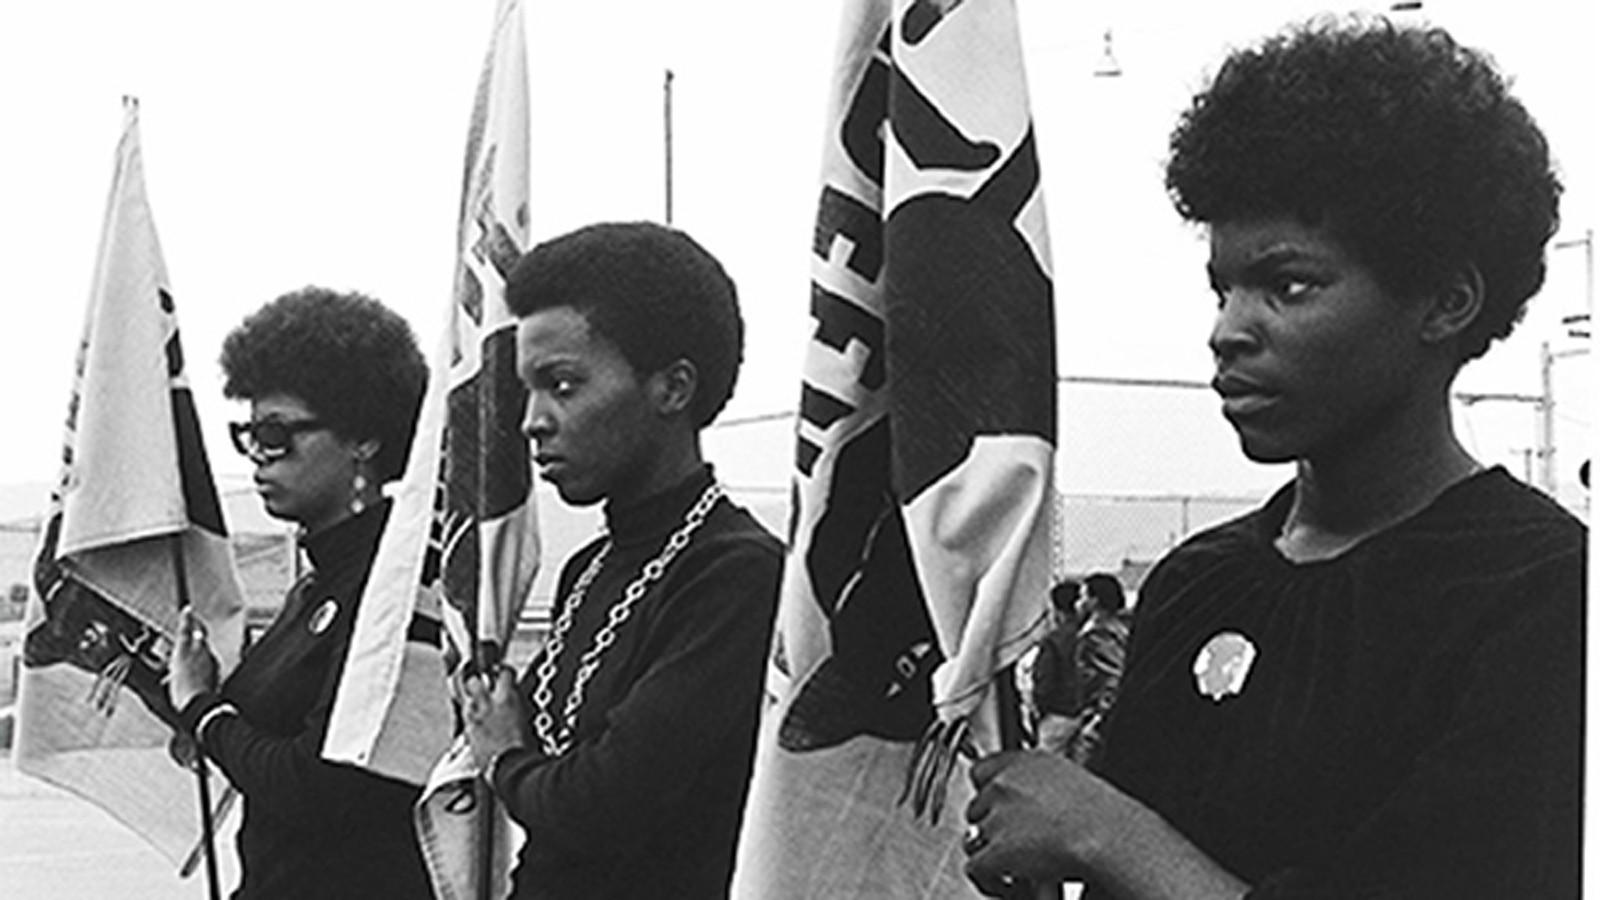 an overview of the organization of the black panthers as an organization of radical and political vi Home agents of repression : summary add to book bag agents of repression : the fbi's secret war against the black panther party against that organization.